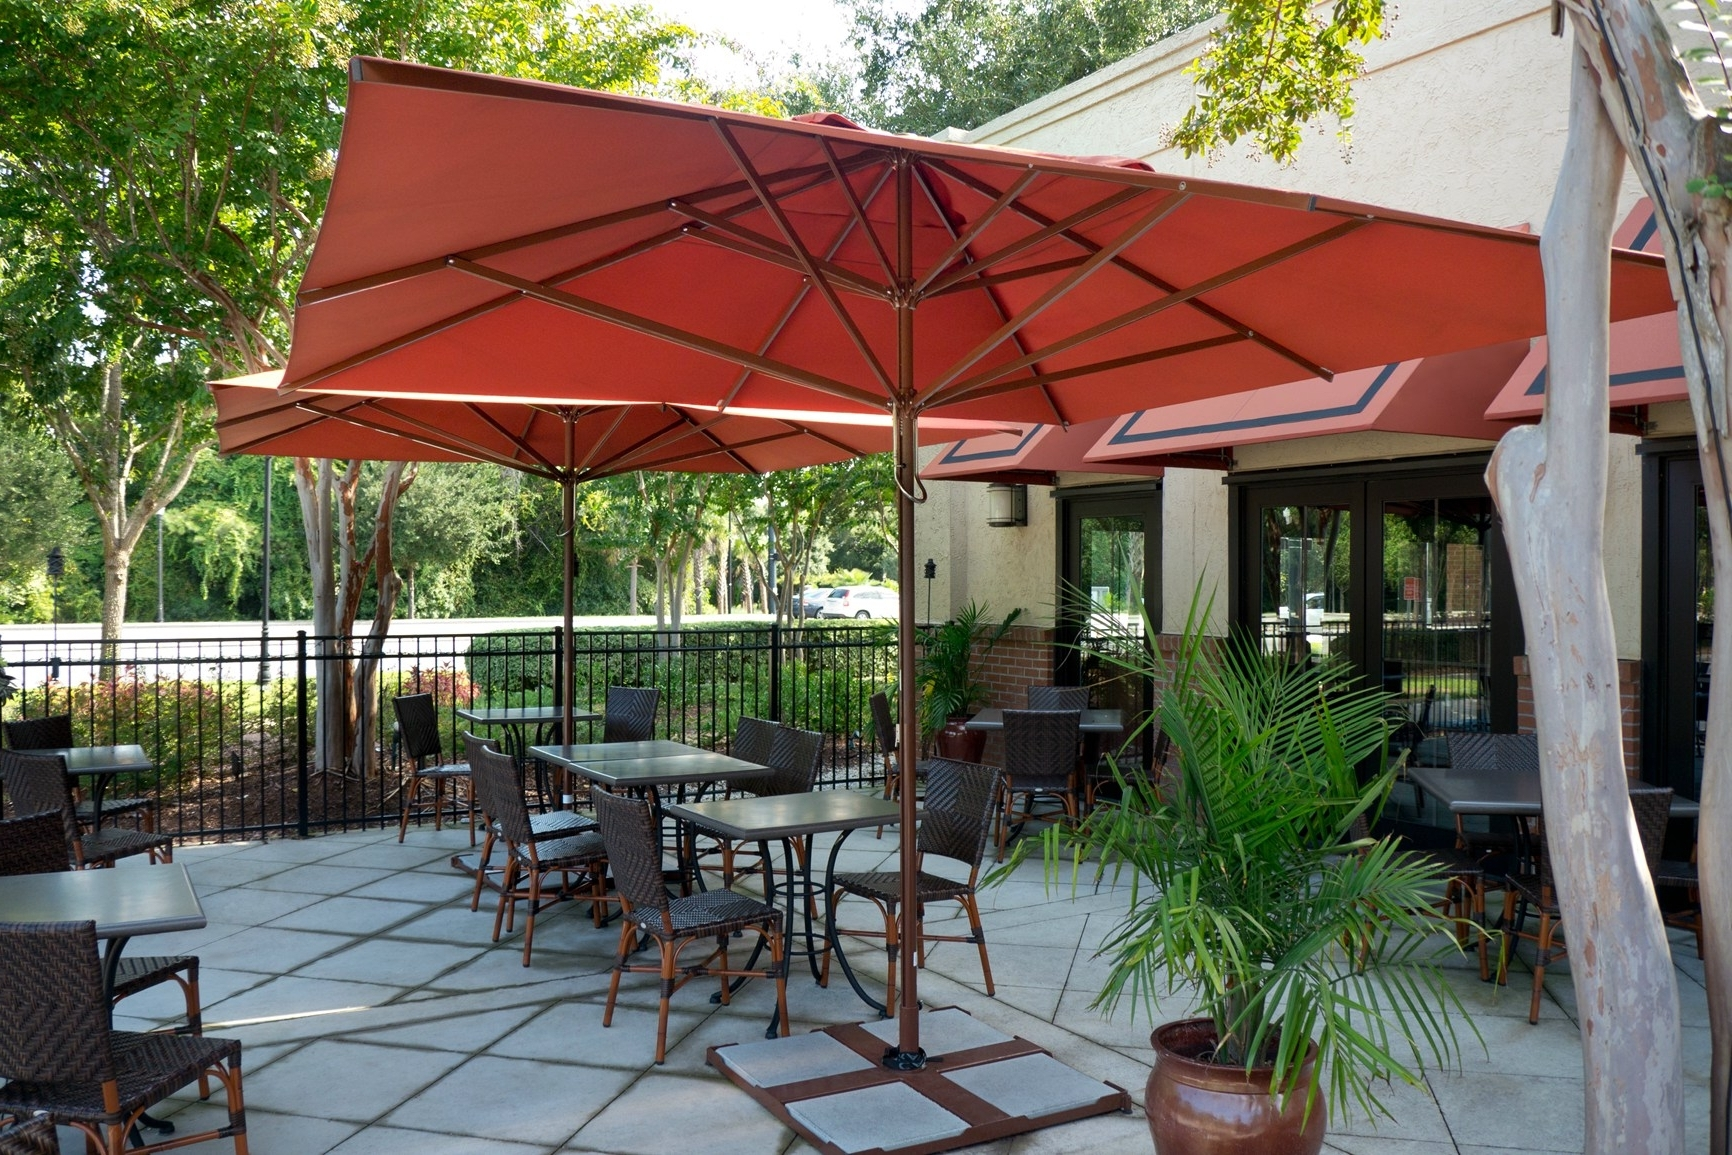 Patio Umbrellas With White Pole With Regard To Well Known Patio Red Umbrellas Umbrella With White Pole Offset Within Newest (View 17 of 20)